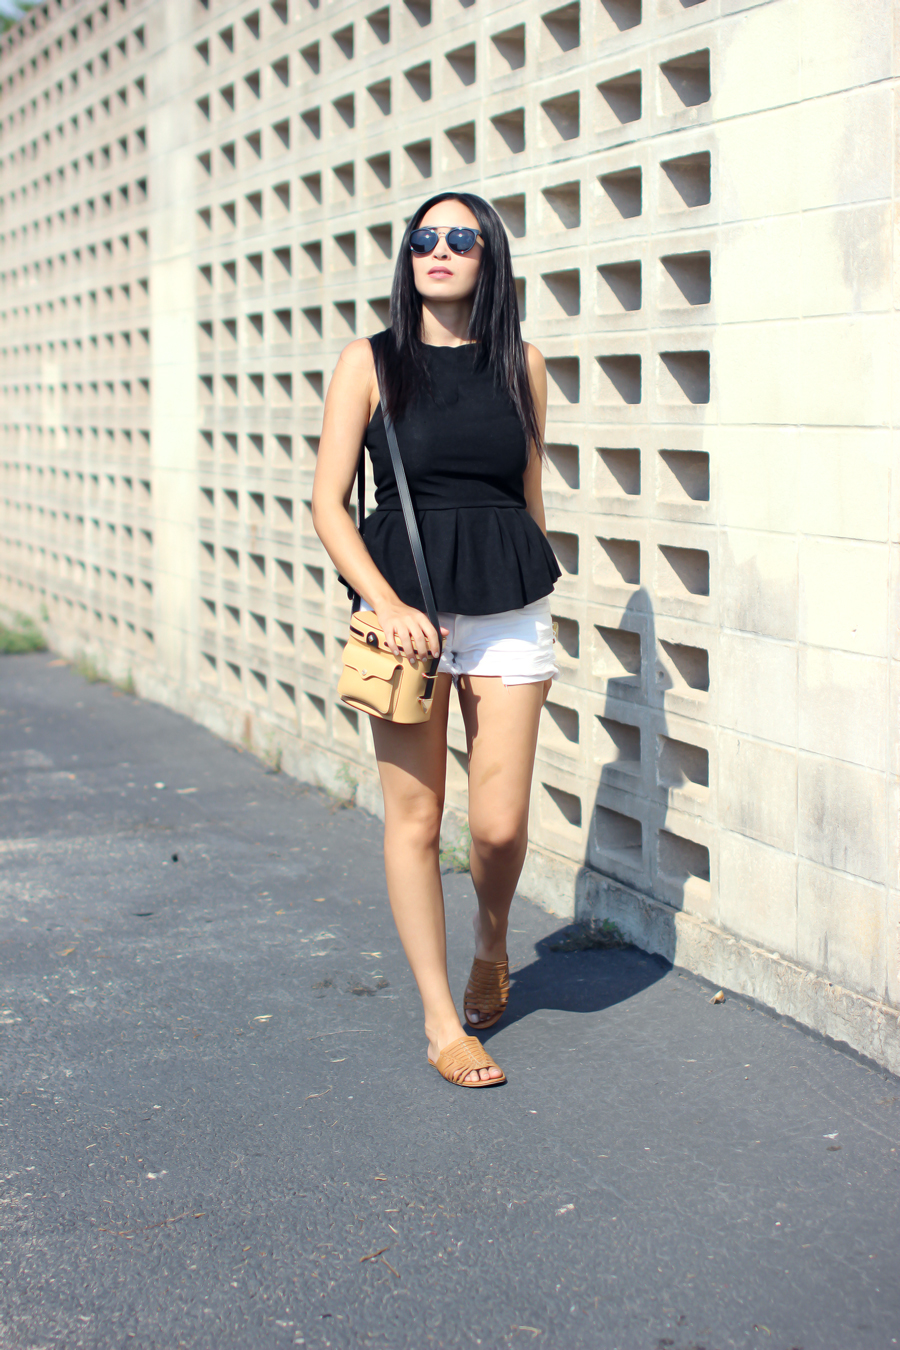 AUSTIN-STYLE-BLOG-PEPLUM-SANDALS-FIXIN-TO-THRILL-NORDSTROM-TRENDS-FW15-SUMMER-TRENDY-CHIC-GLAM-FASHION-OUTFIT-TEXAS-BLACK-HAIR-5